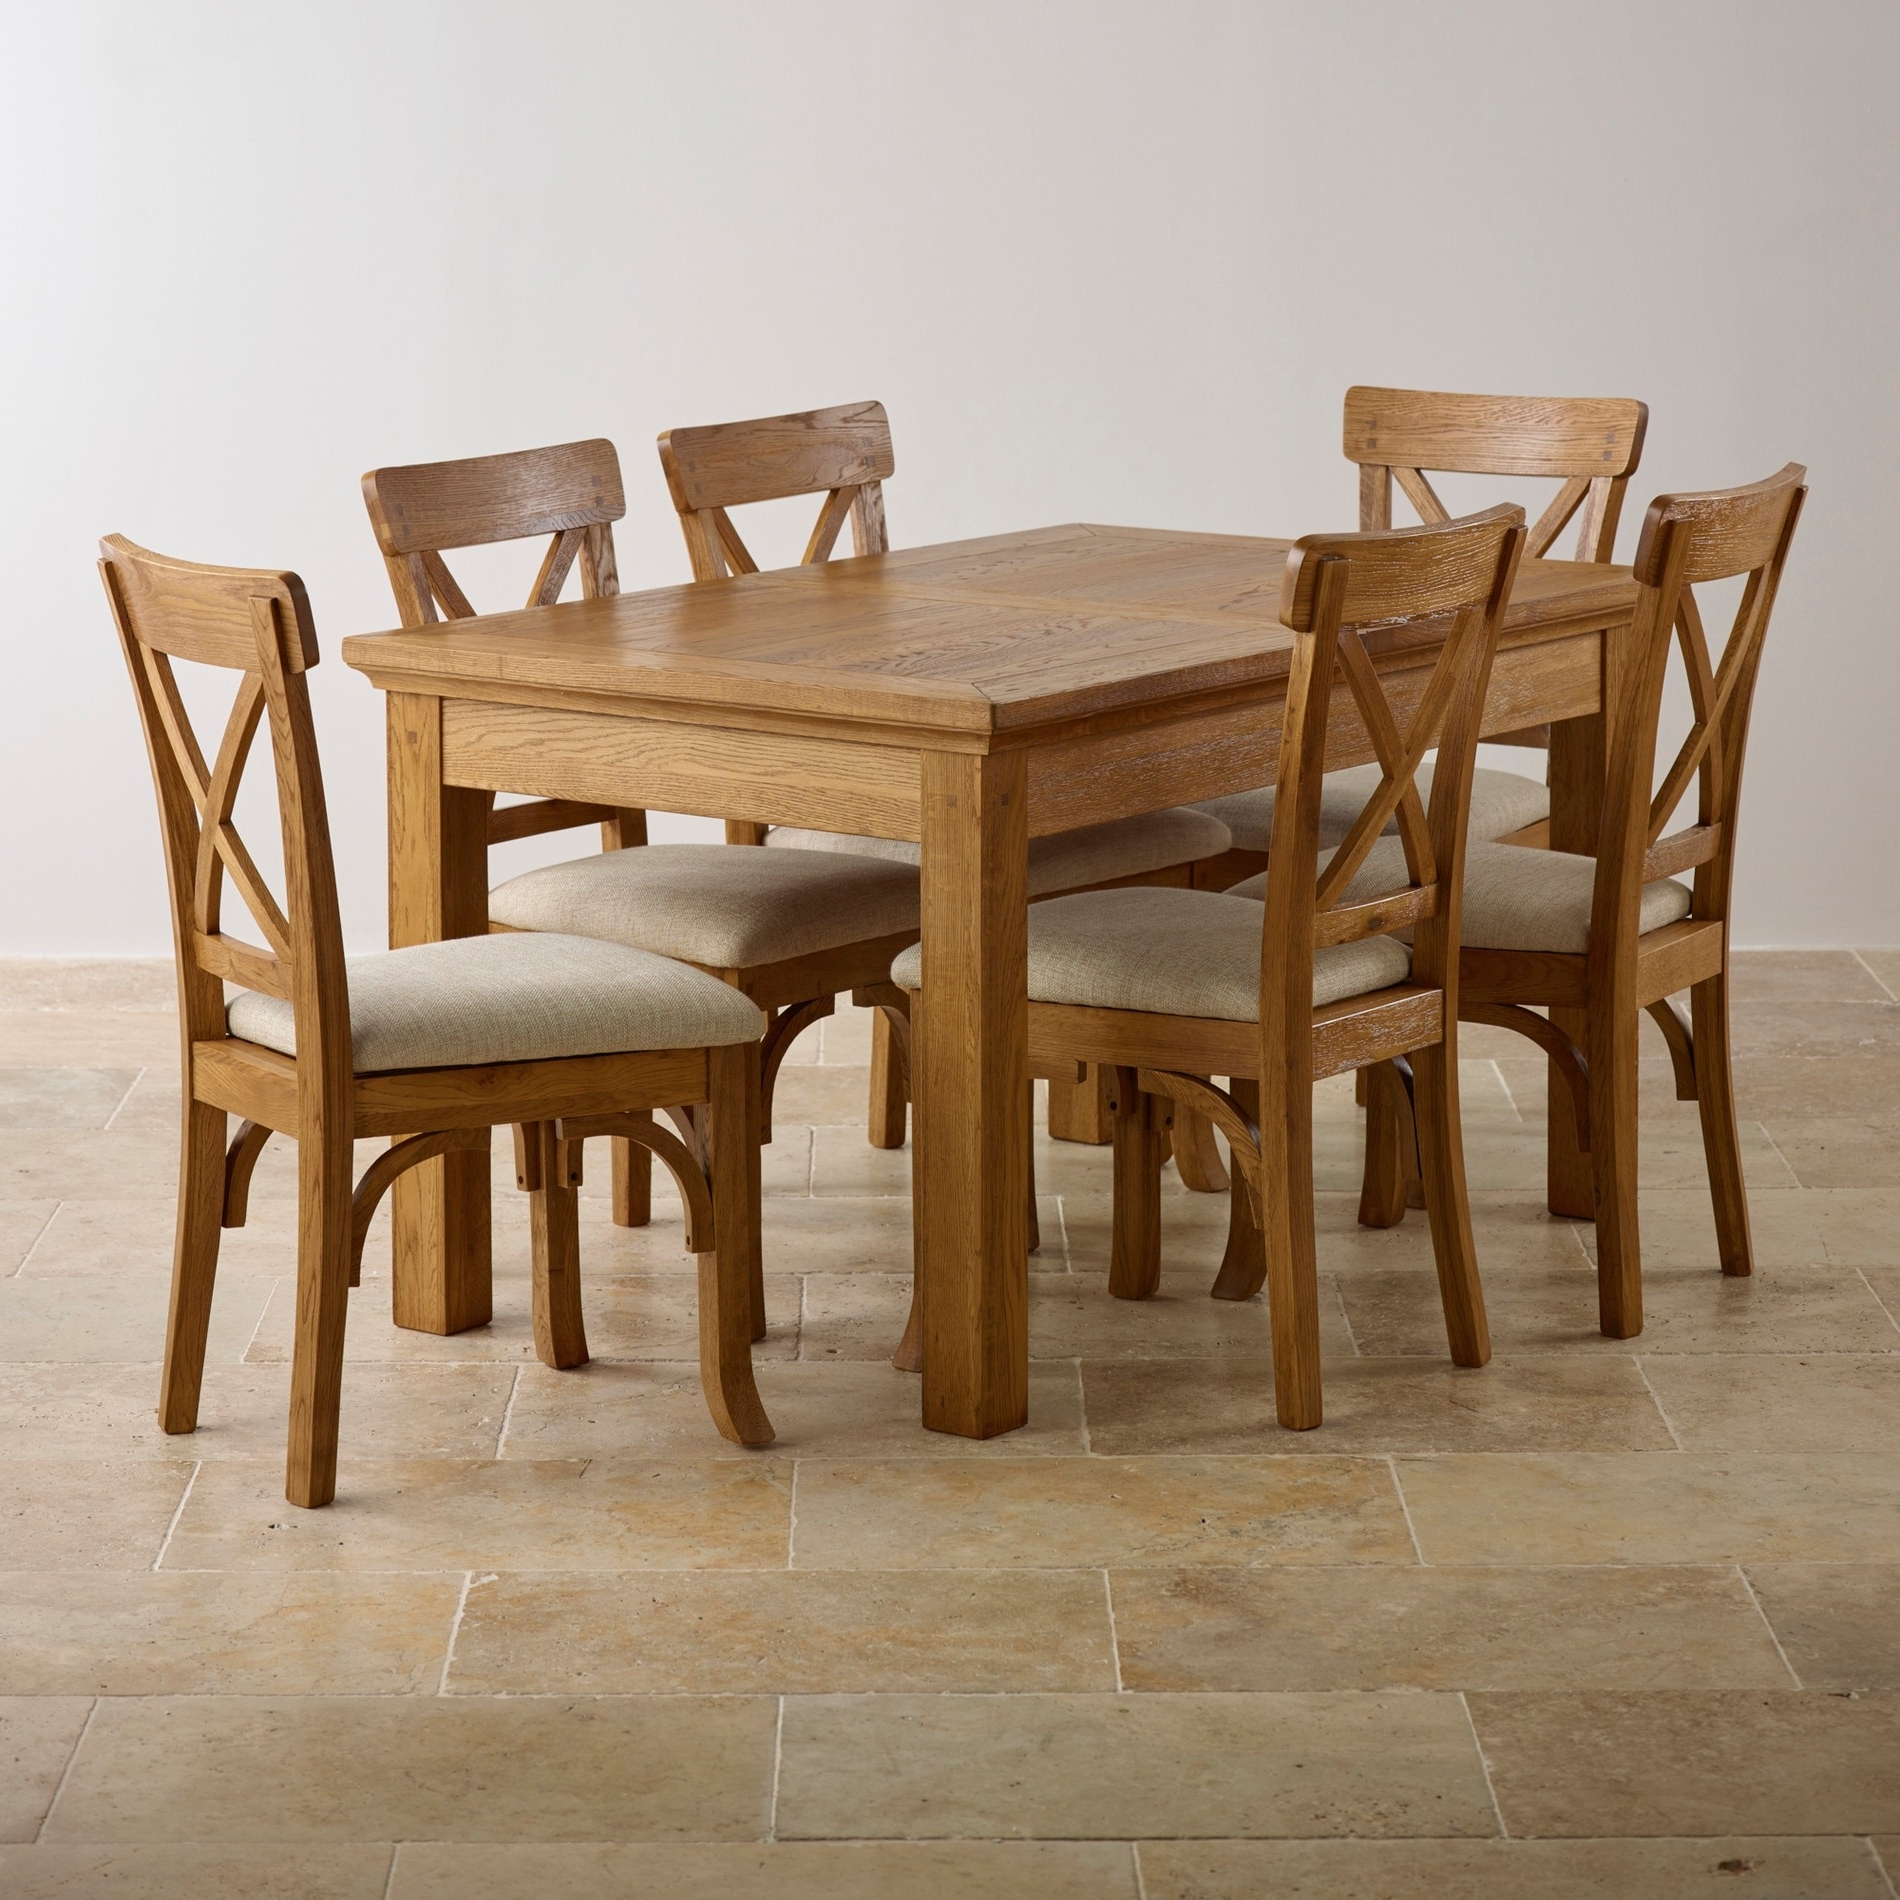 The 28 Awesome 6 Seater Extendable Dining Table – Welovedandelion For Most Current Extendable Dining Tables And 6 Chairs (View 9 of 25)